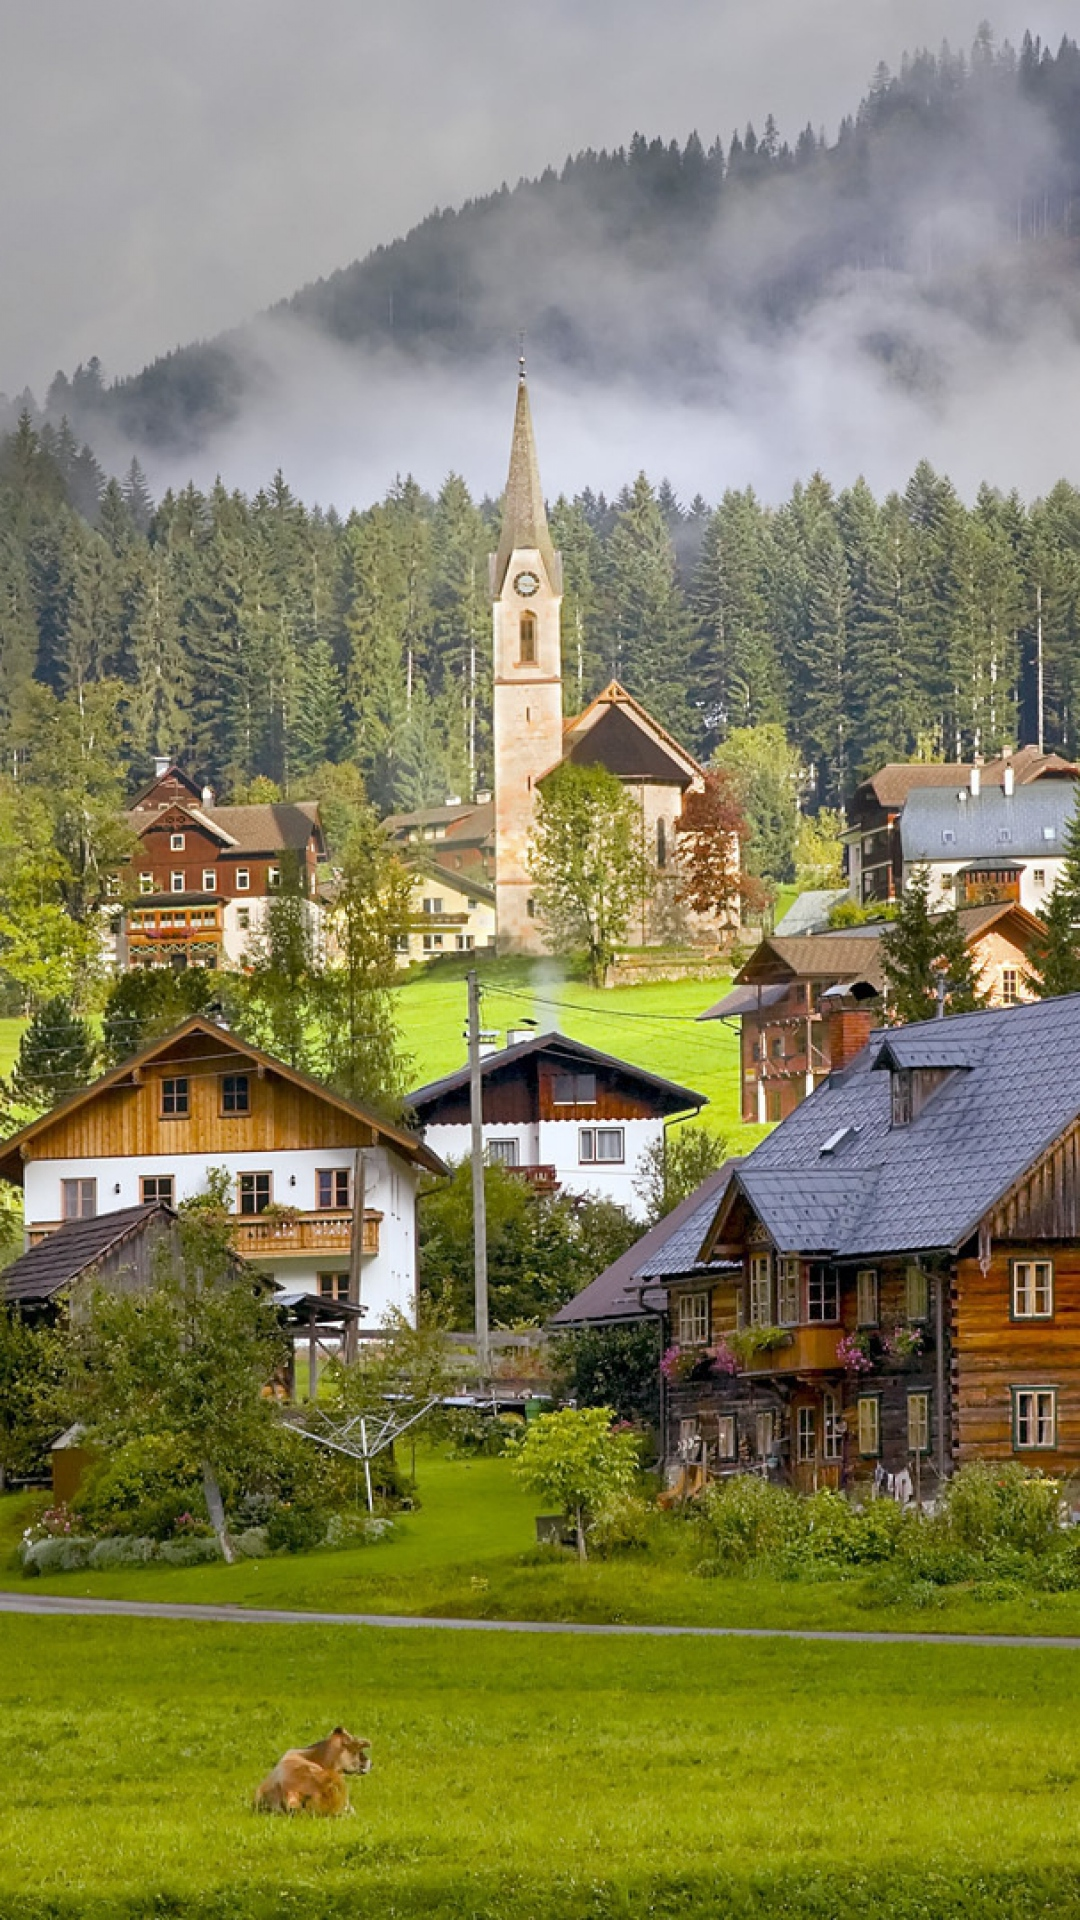 Download-1080x1920-Austria-Gosau-Village-Houses-Cows-Sony-Xperia-Z-ZL-Z-Samsung-Ga-wallpaper-wp3804781